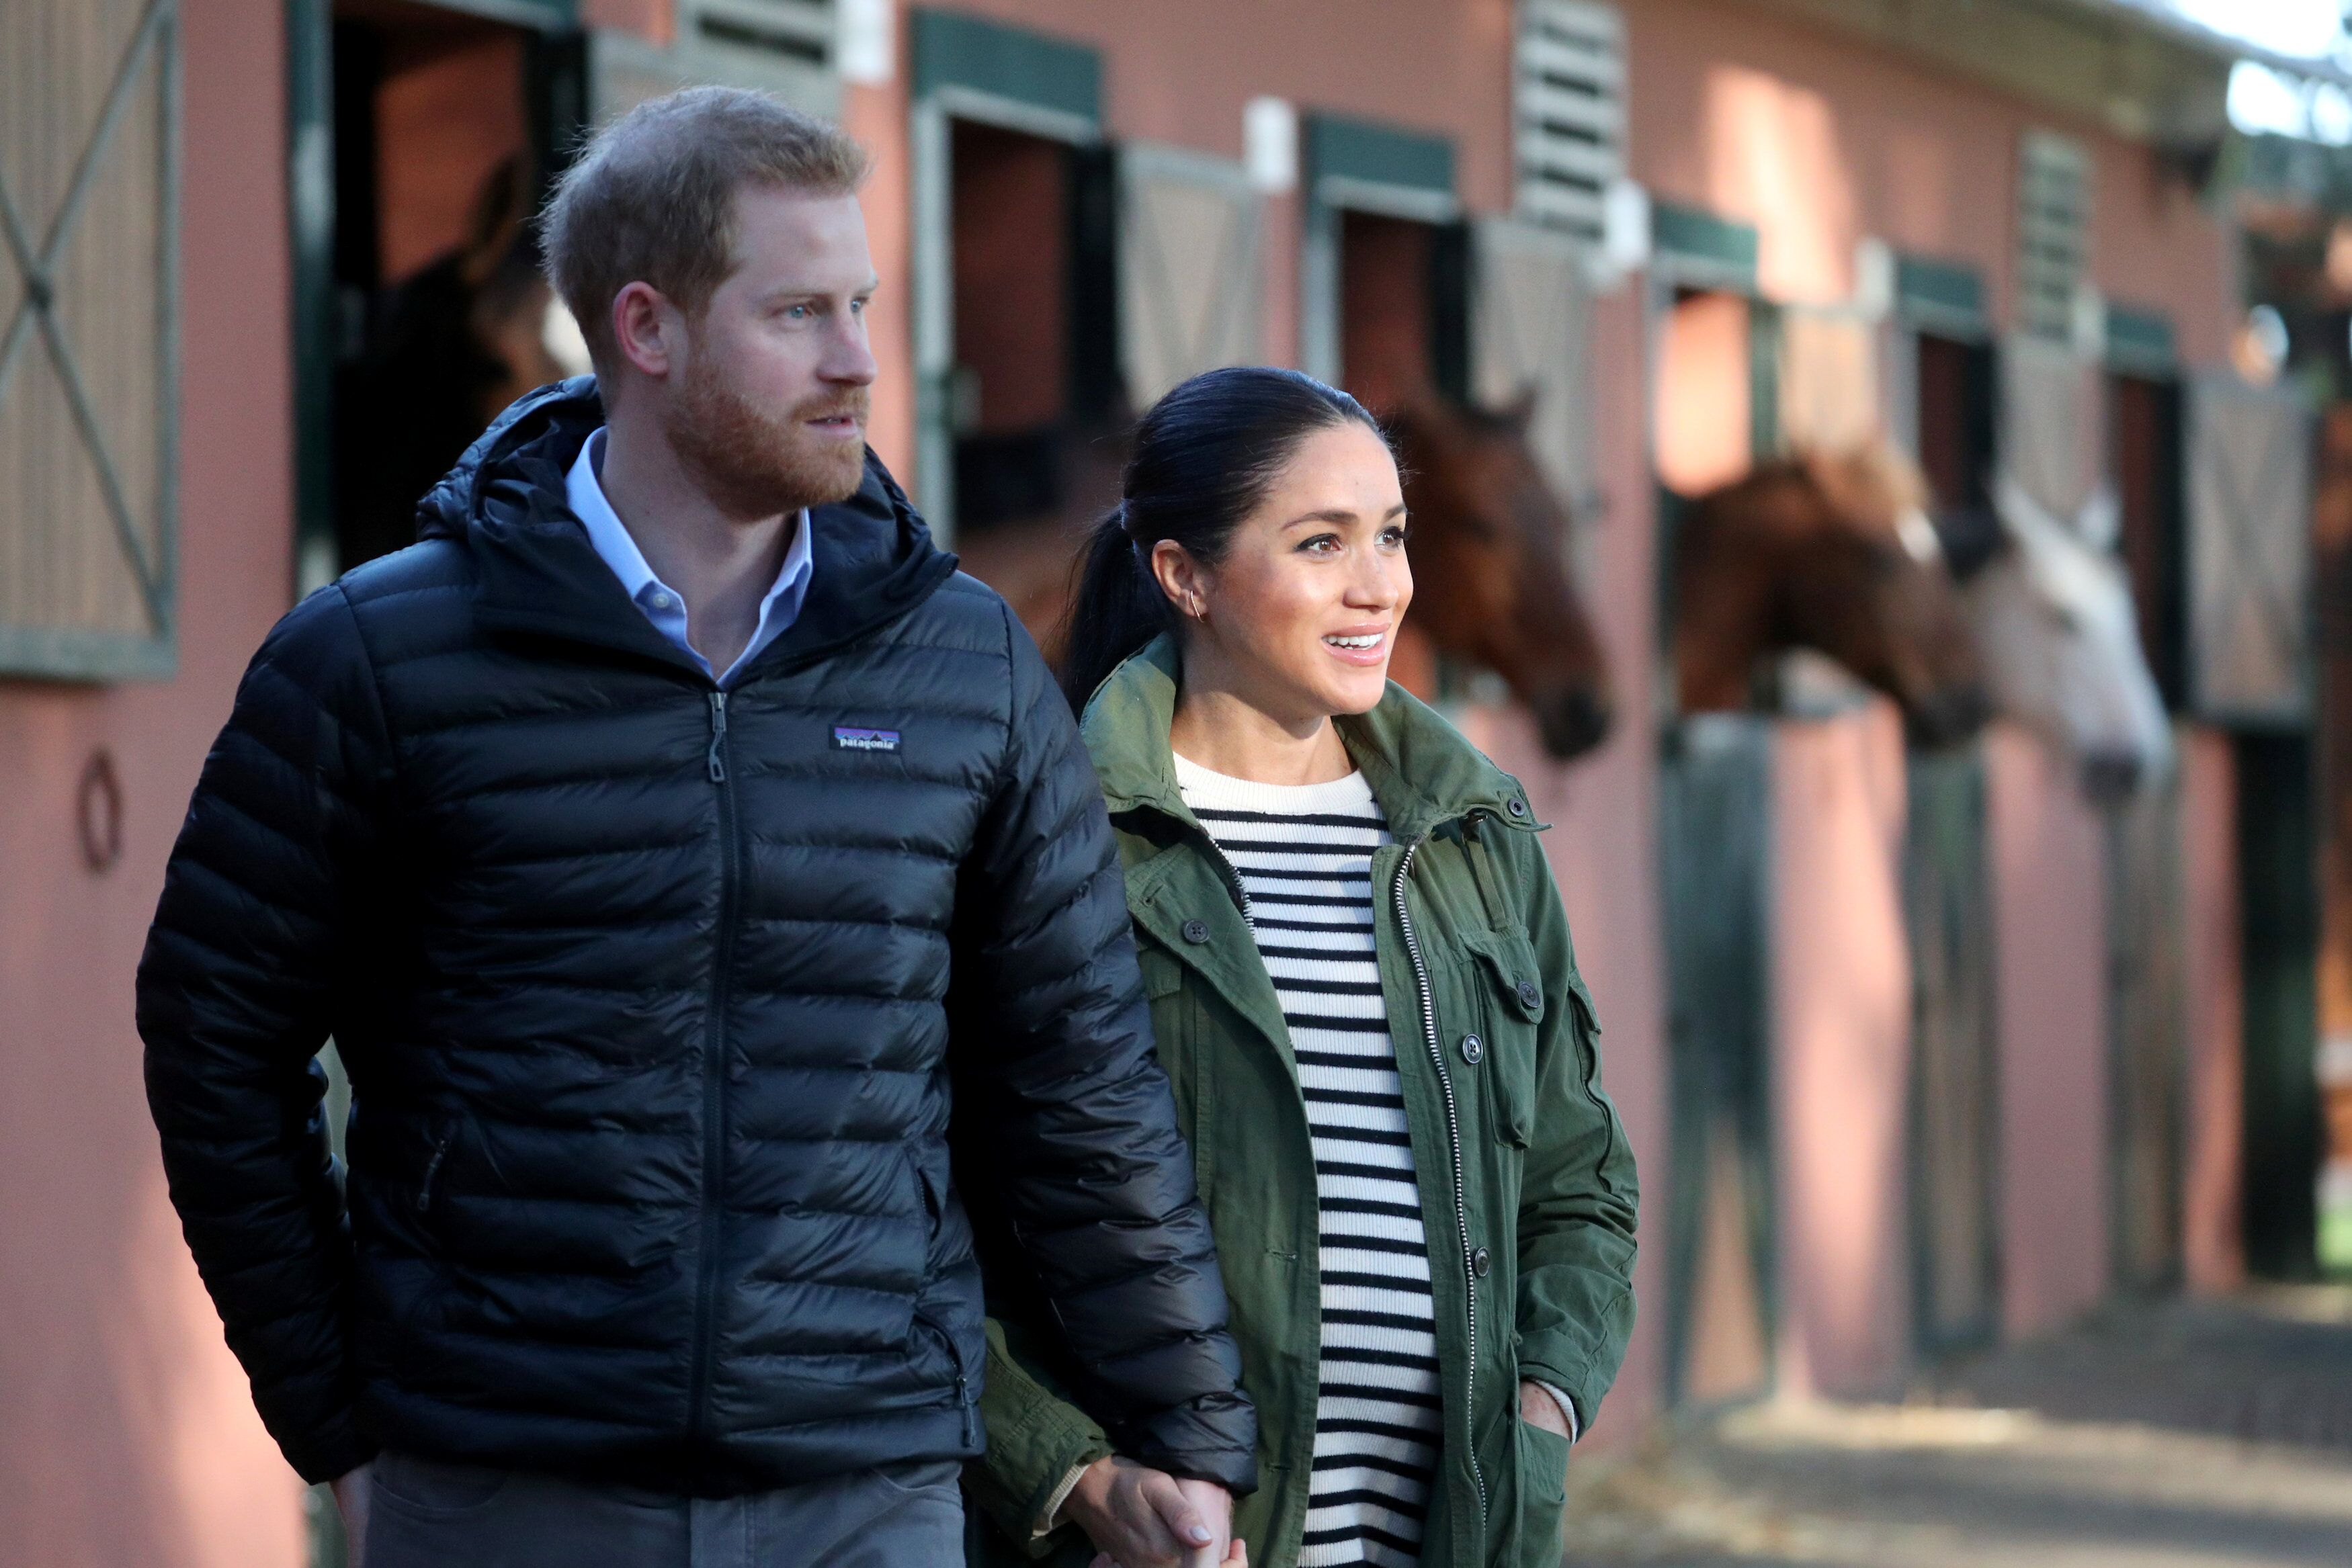 Prince Harry, Duke of Sussex and Meghan, Duchess of Sussex in Morocco in 2019 | Source: Getty Images